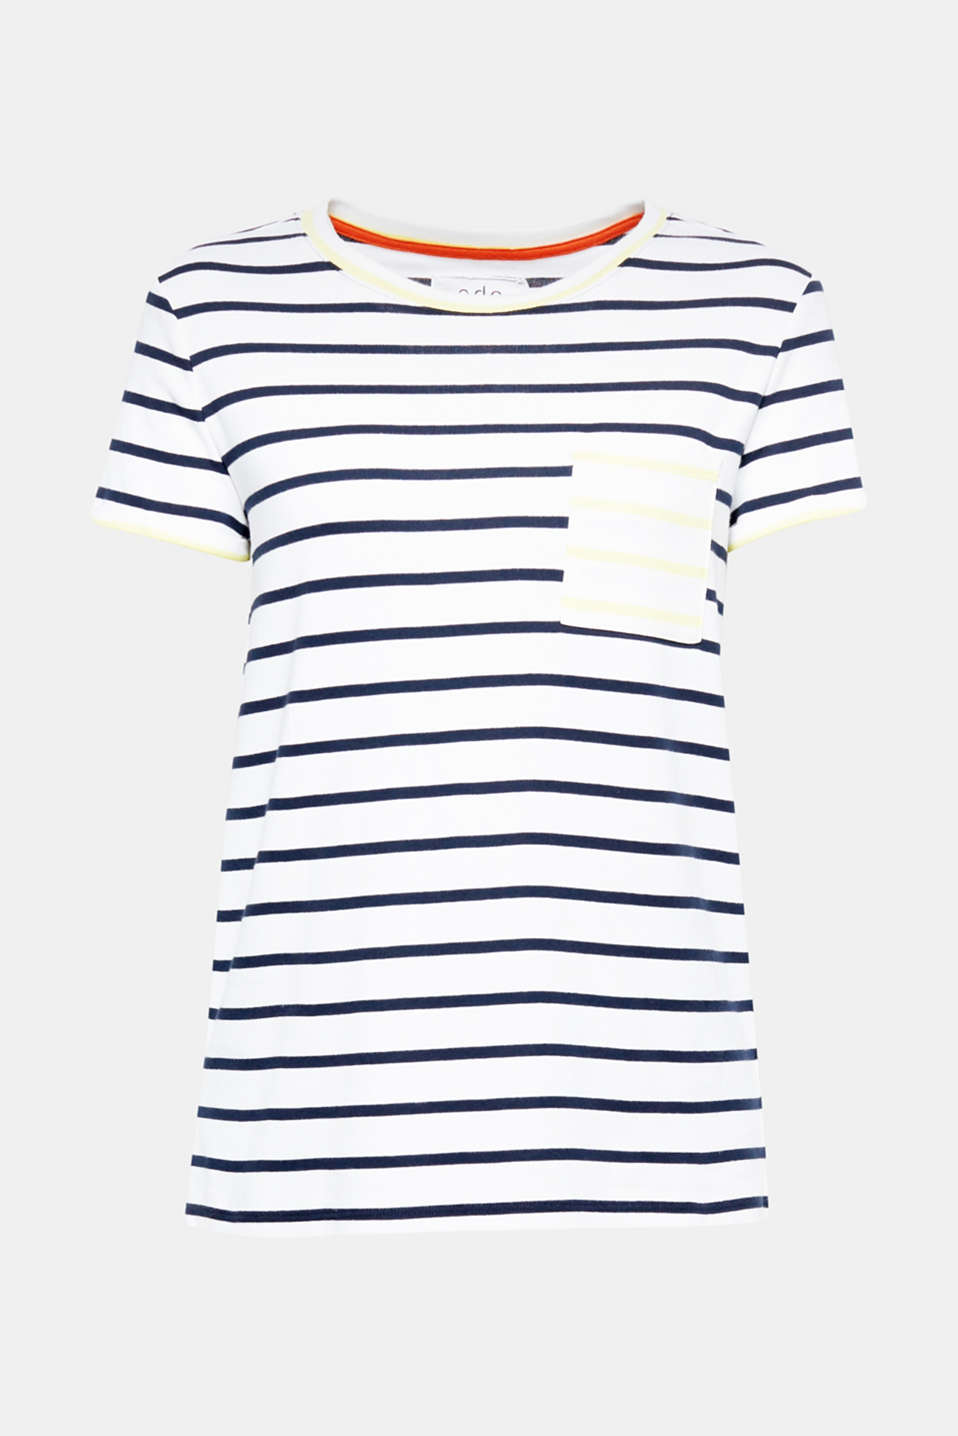 Summer essential: T-shirt made of compact ribbed jersey featuring an innovative, individual stripe pattern.